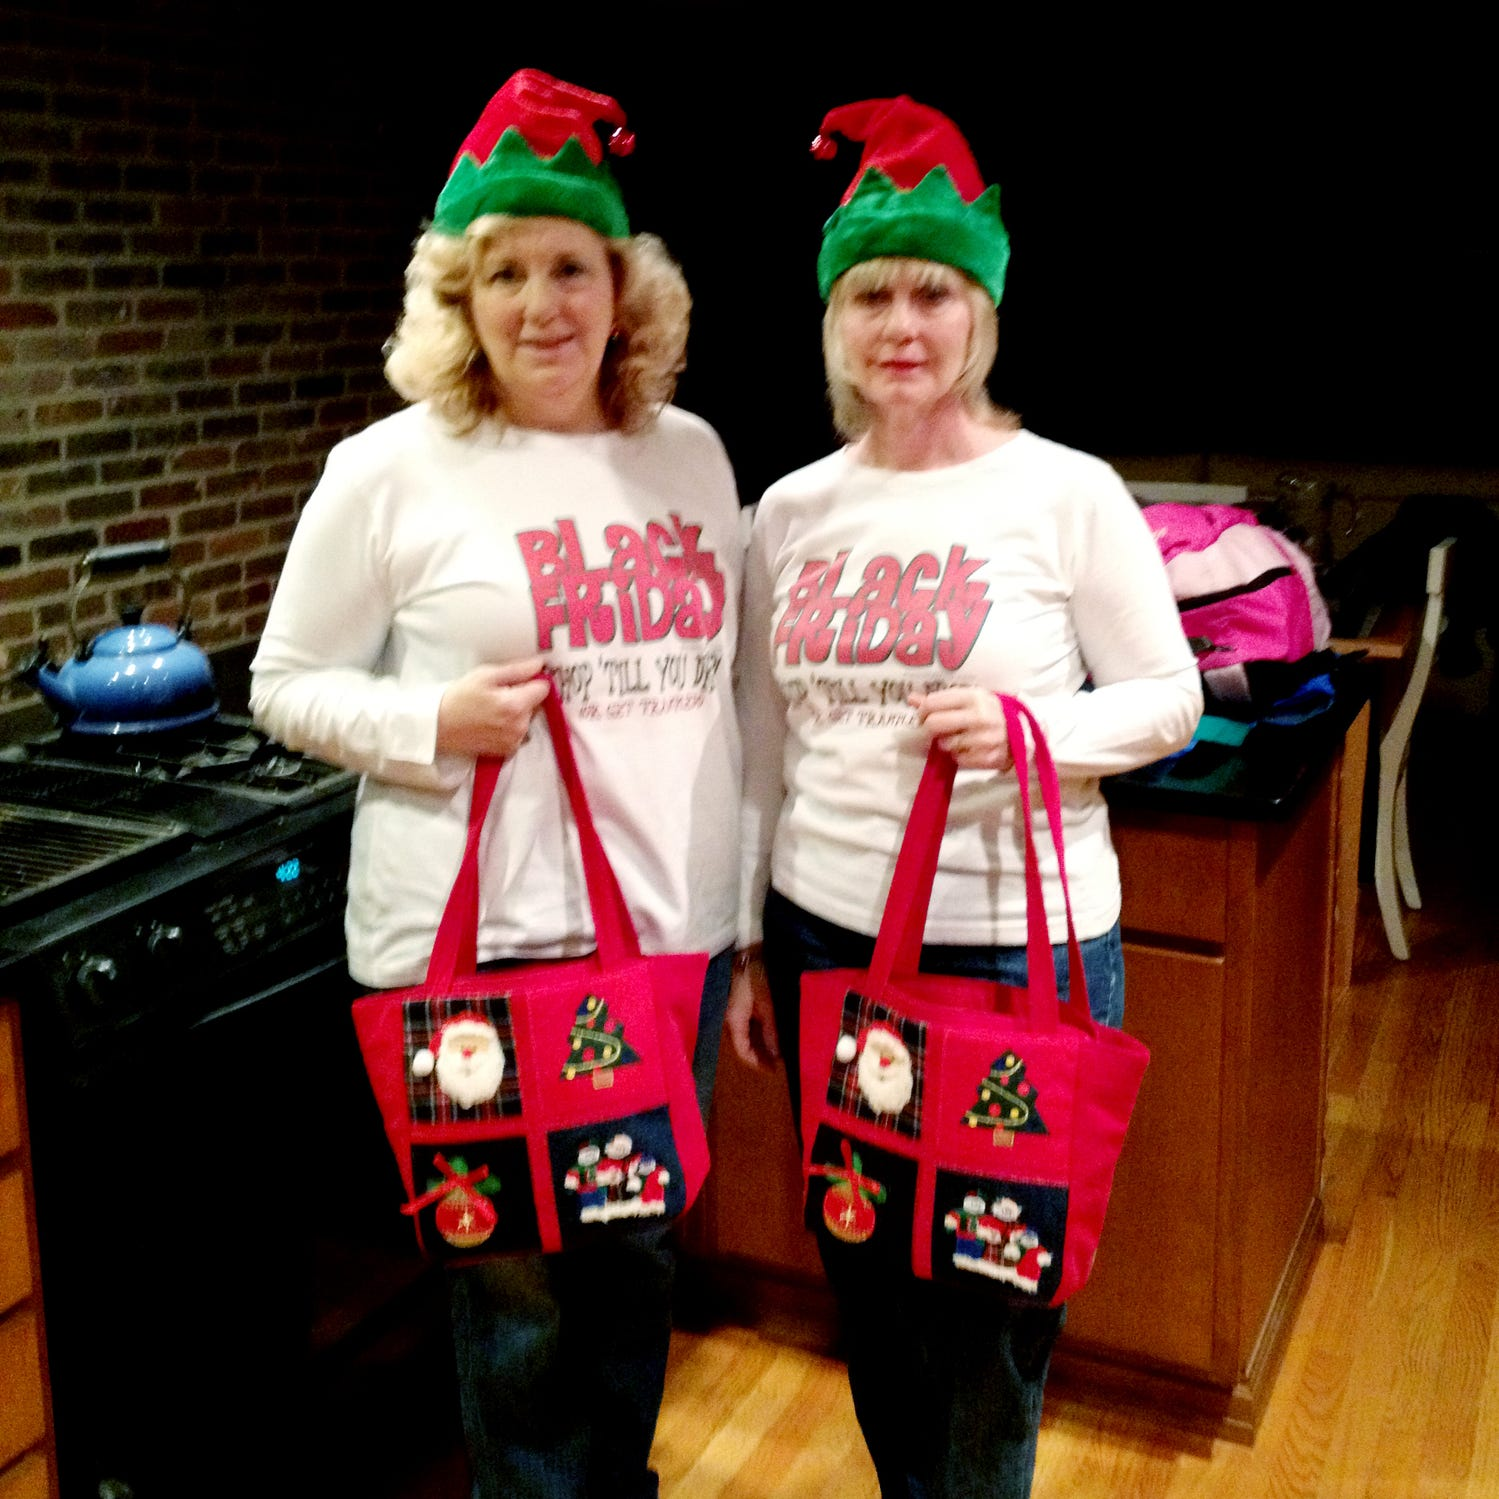 From Singapore to Nashville: Sisters plan 35th year of Black Friday shopping together